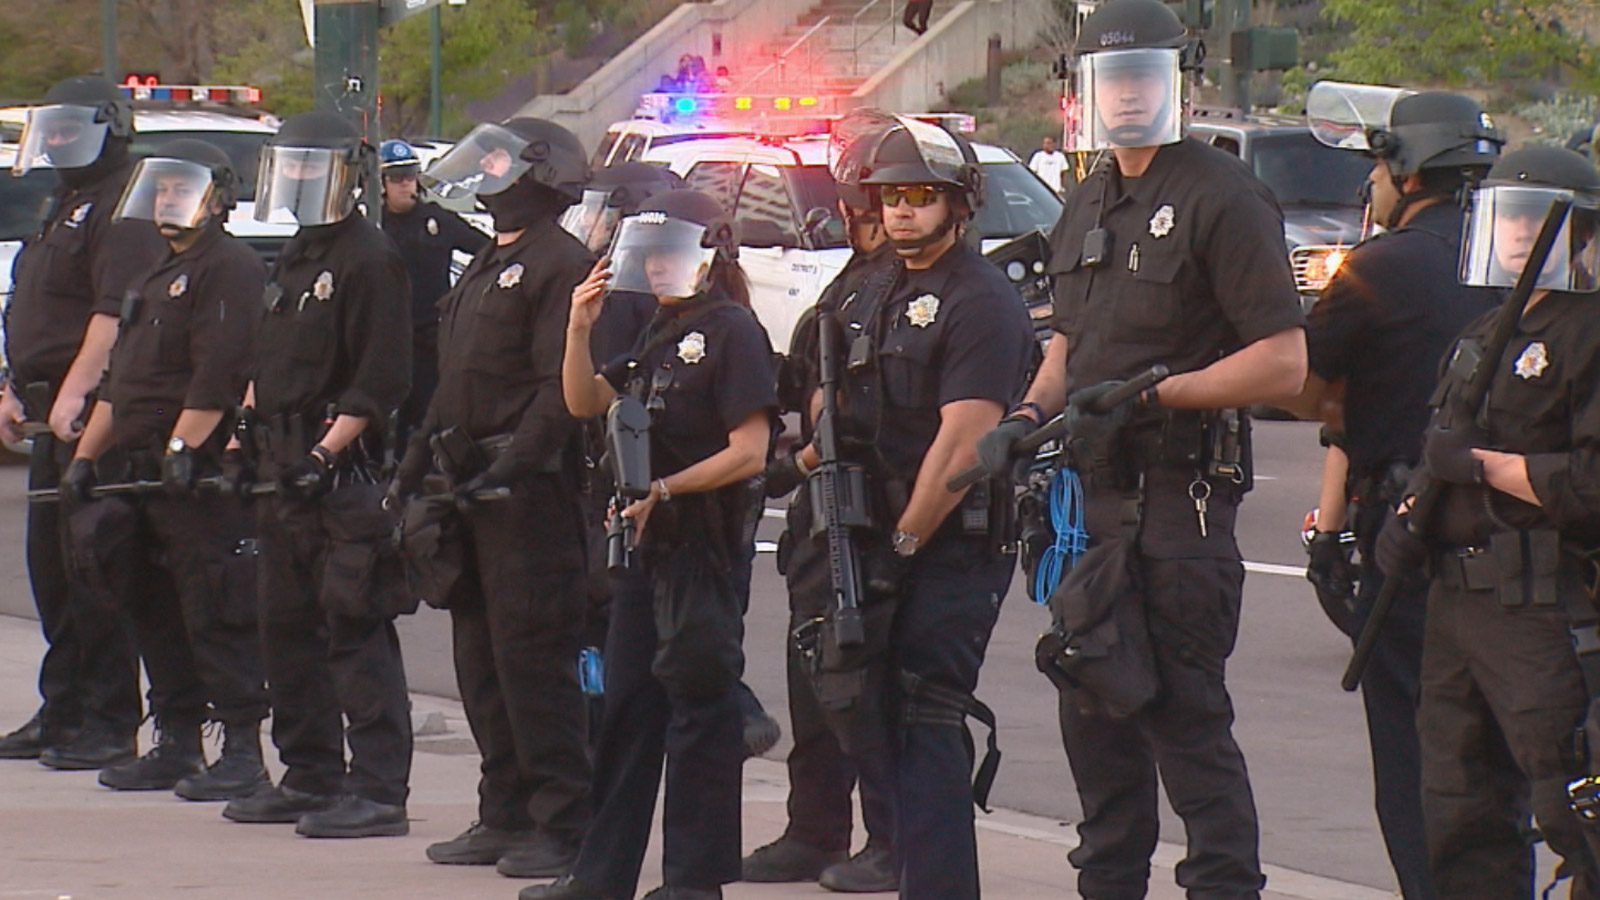 Denver Police at a protest near the state Capitol on Tuesday (credit: CBS)